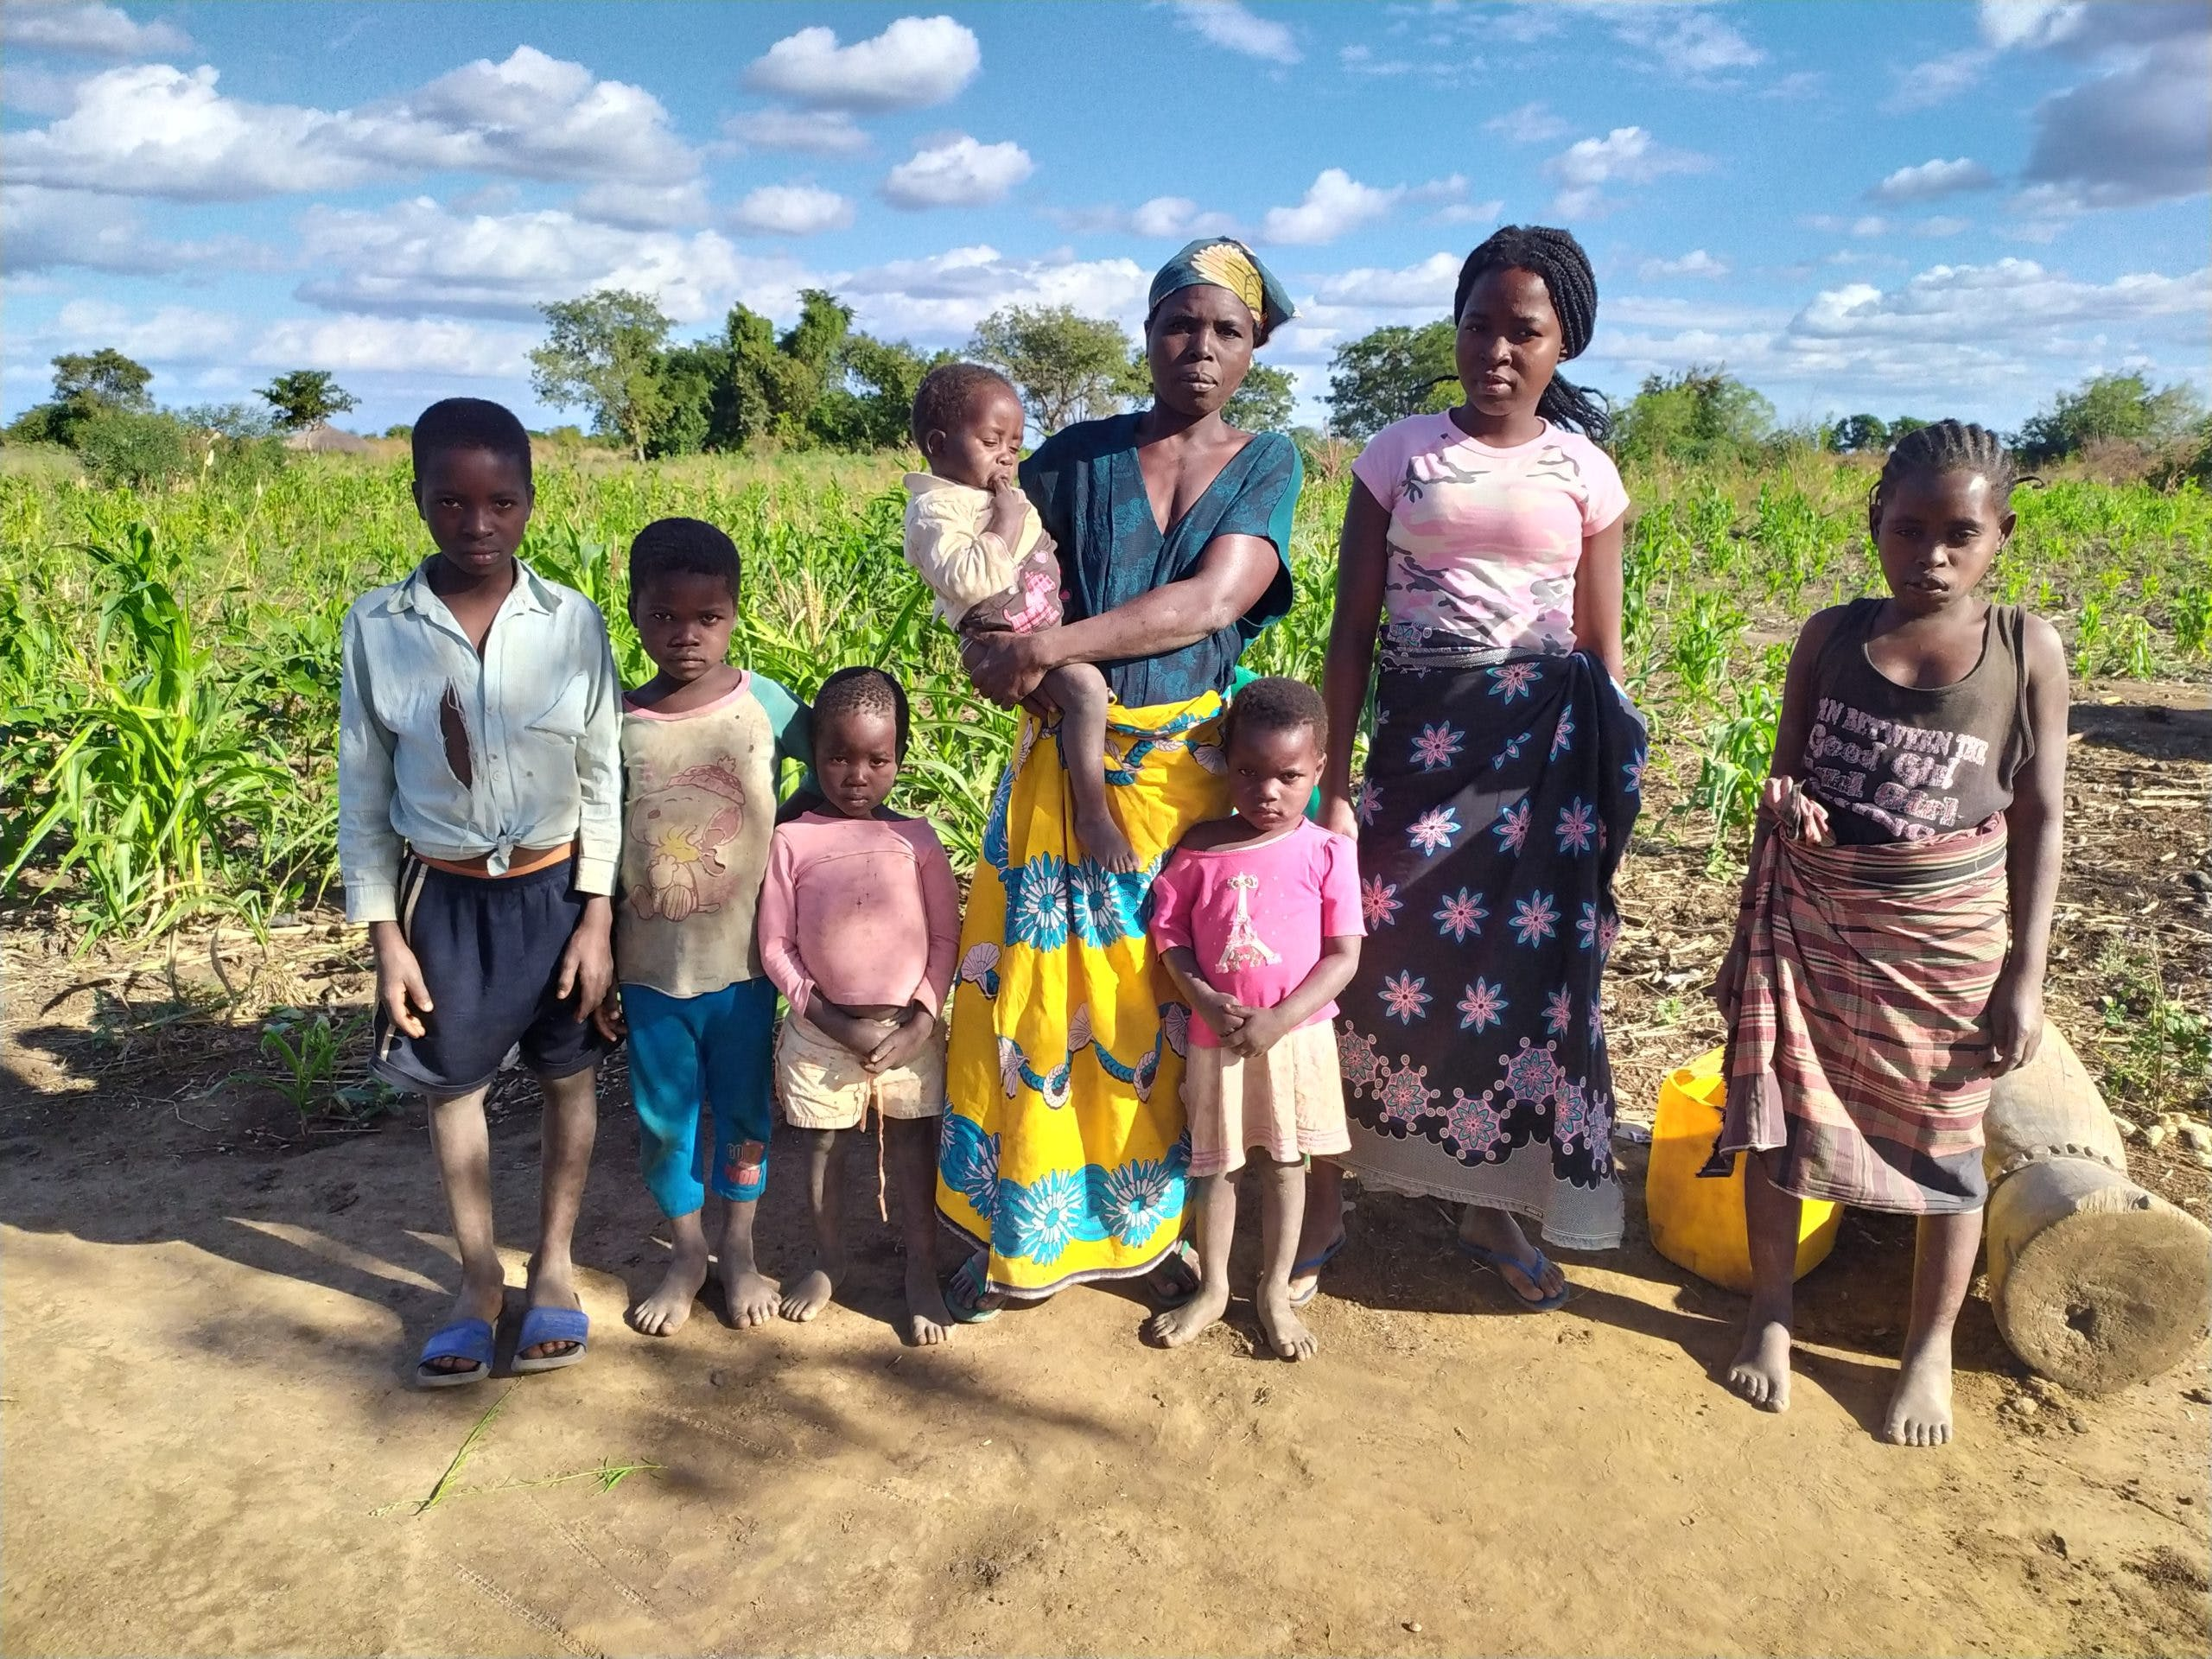 Rosita and her children pose for a photo in front of their fields.